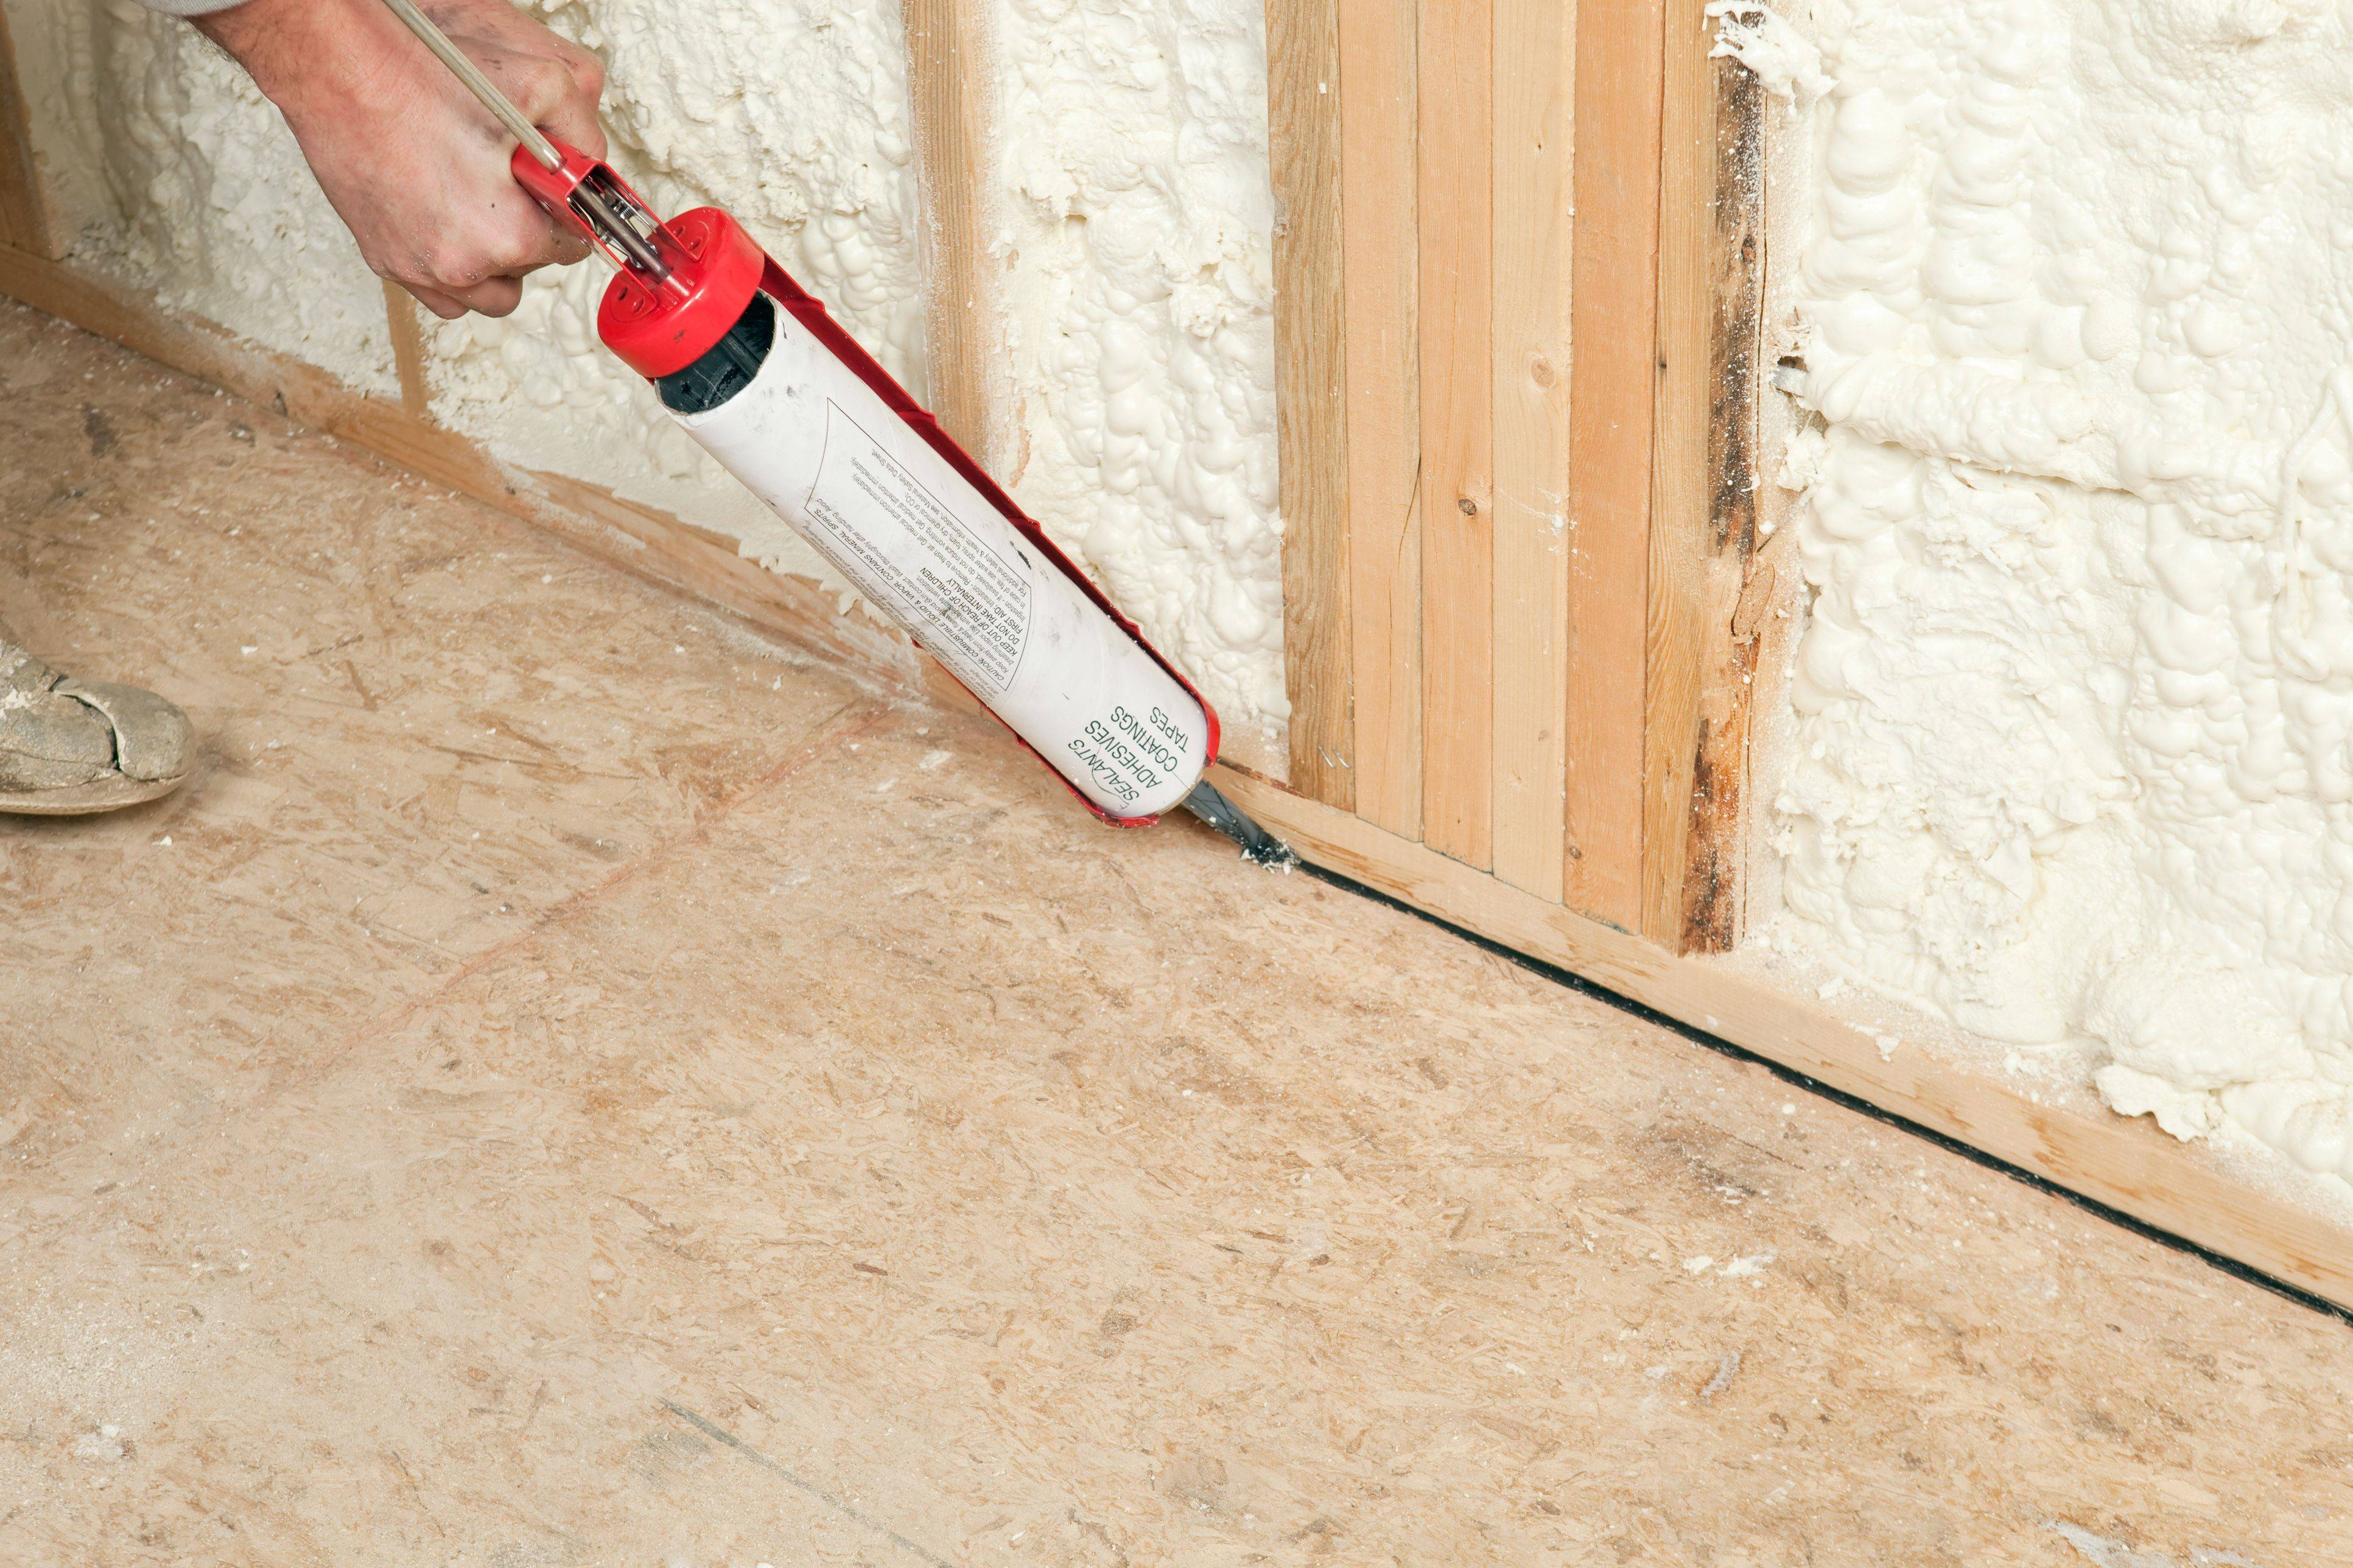 hardwood floor repair portland of bougainville flooring the pros and cons of prefinished hardwood regarding repair bougainville flooring osb oriented strand board sub flooring